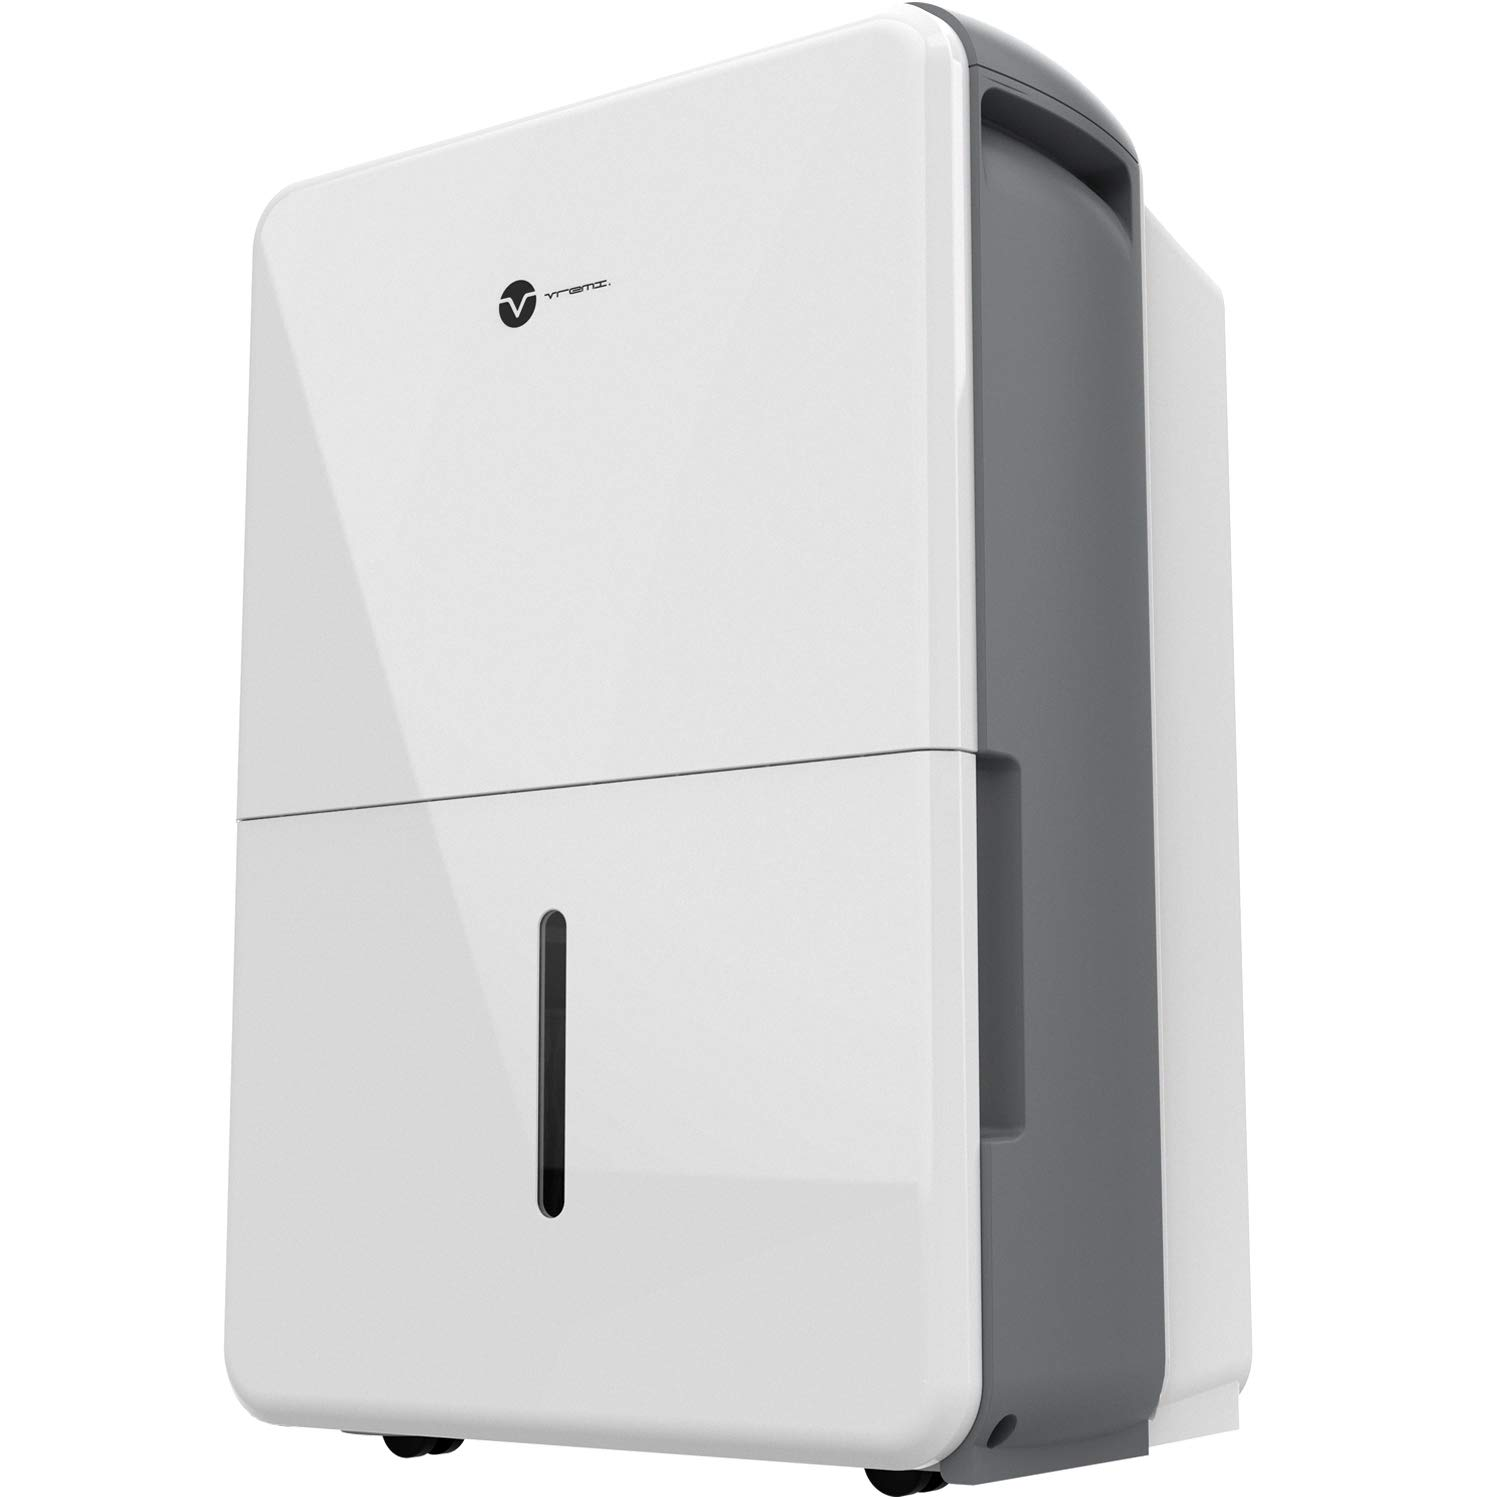 Best Dehumidifier for Mold: Vremi